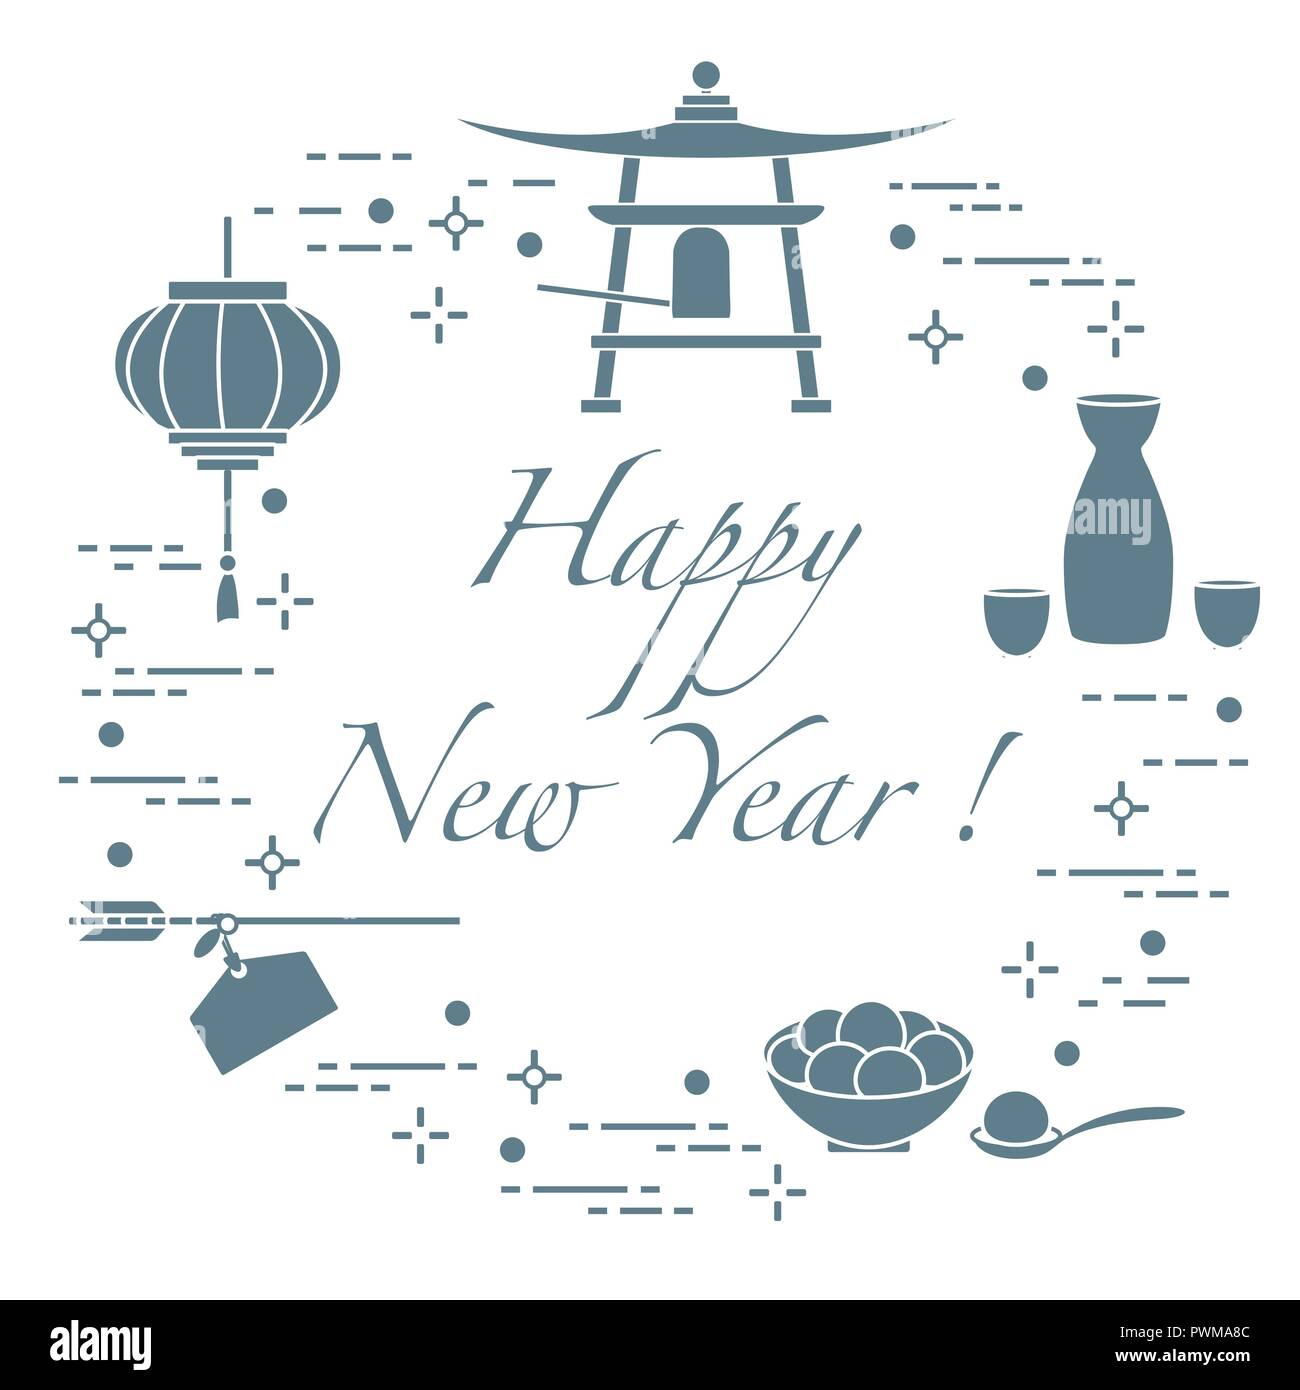 happy new year 2019 card new year symbols in japan lantern bell mochi sake hamaimi festive traditions of different countries